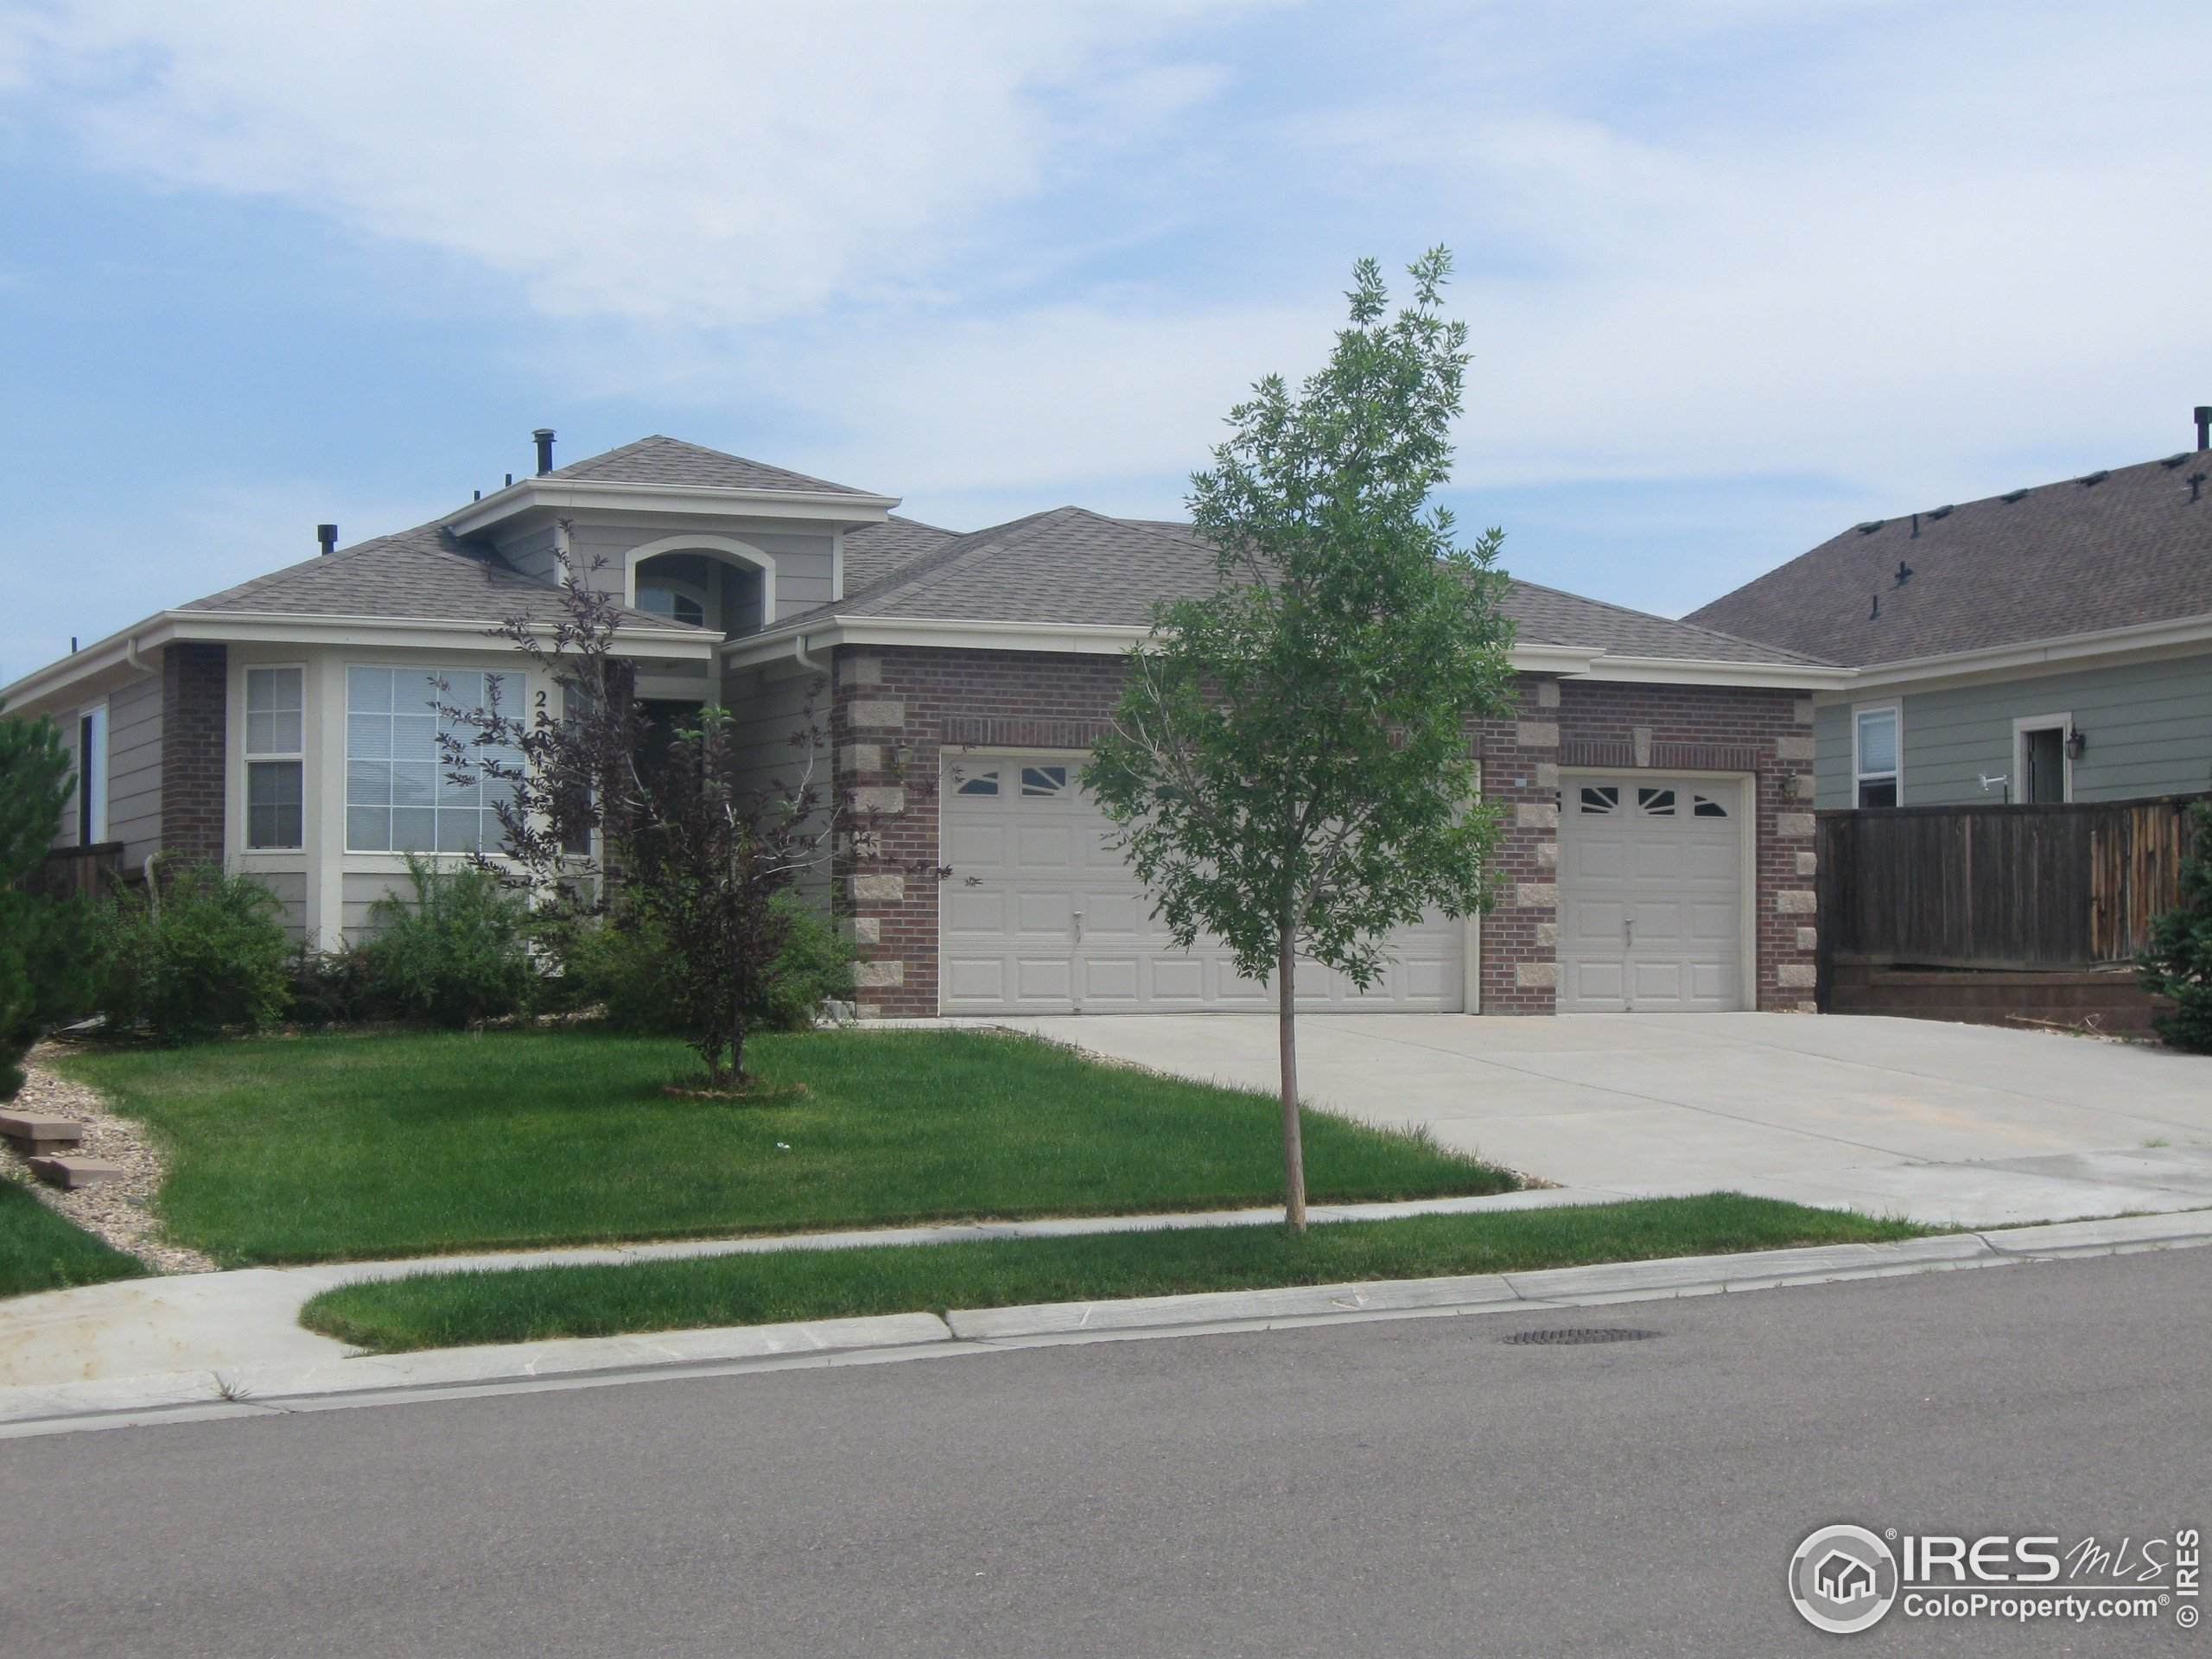 3575 Carbondale St, Loveland, CO 80538 (MLS #936031) :: Downtown Real Estate Partners